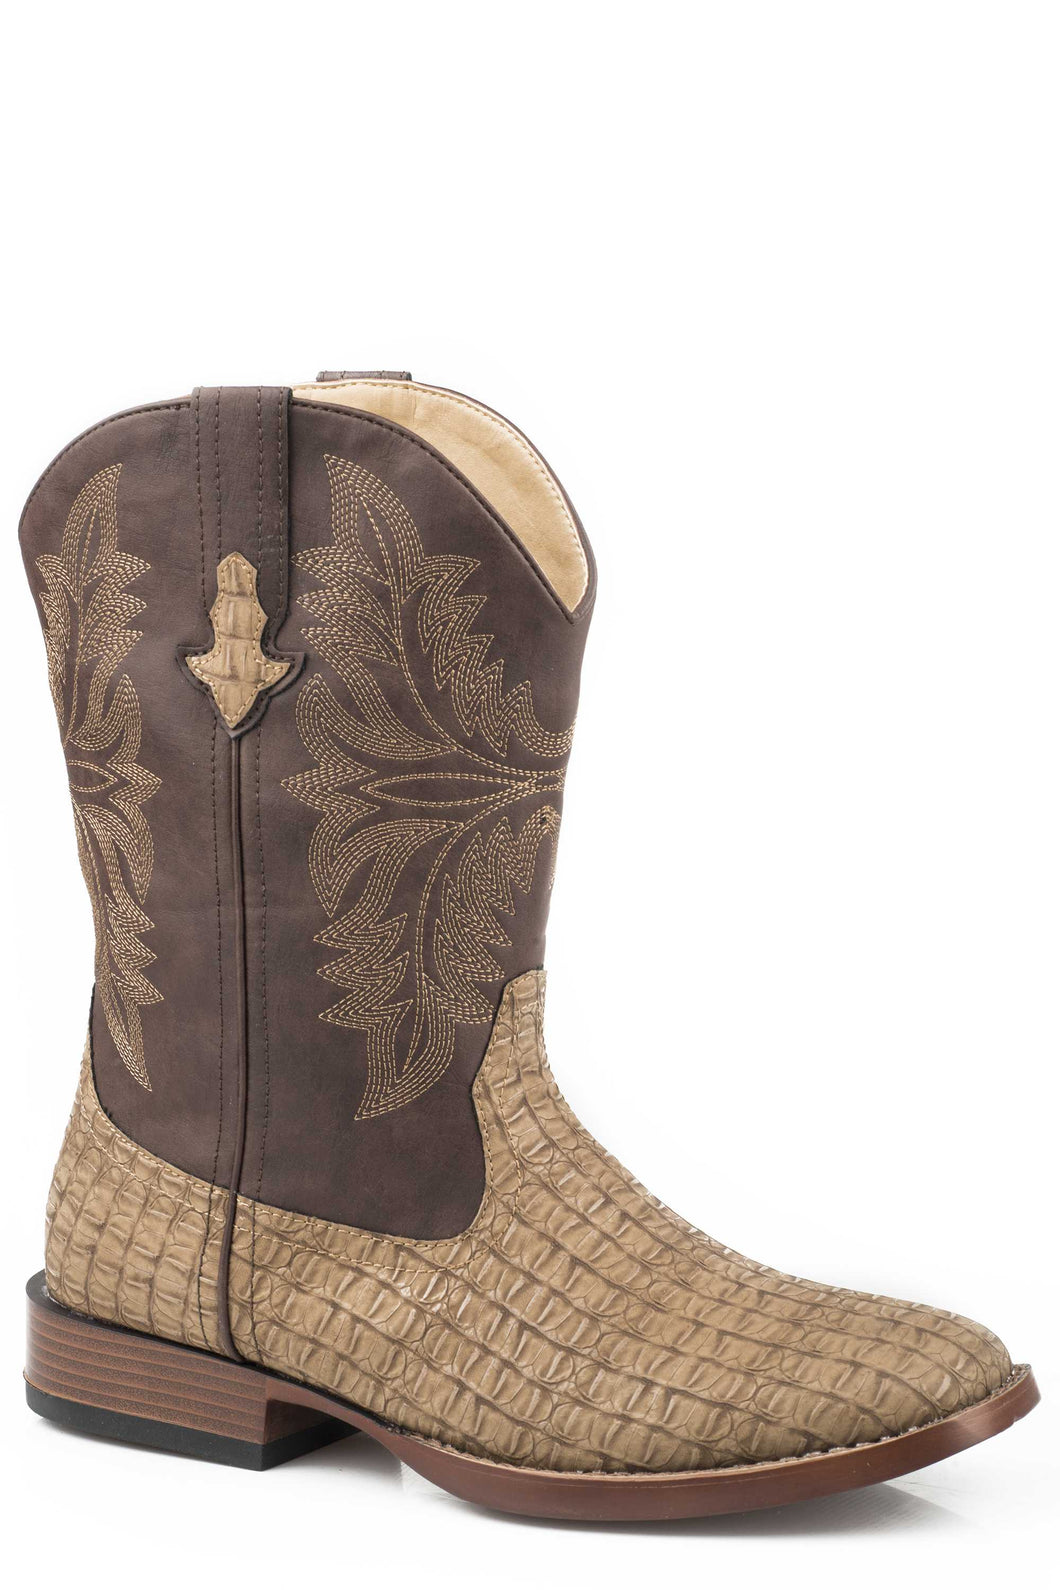 Chomp Boot Mens Boots Tan Embossed Caiman Vamp